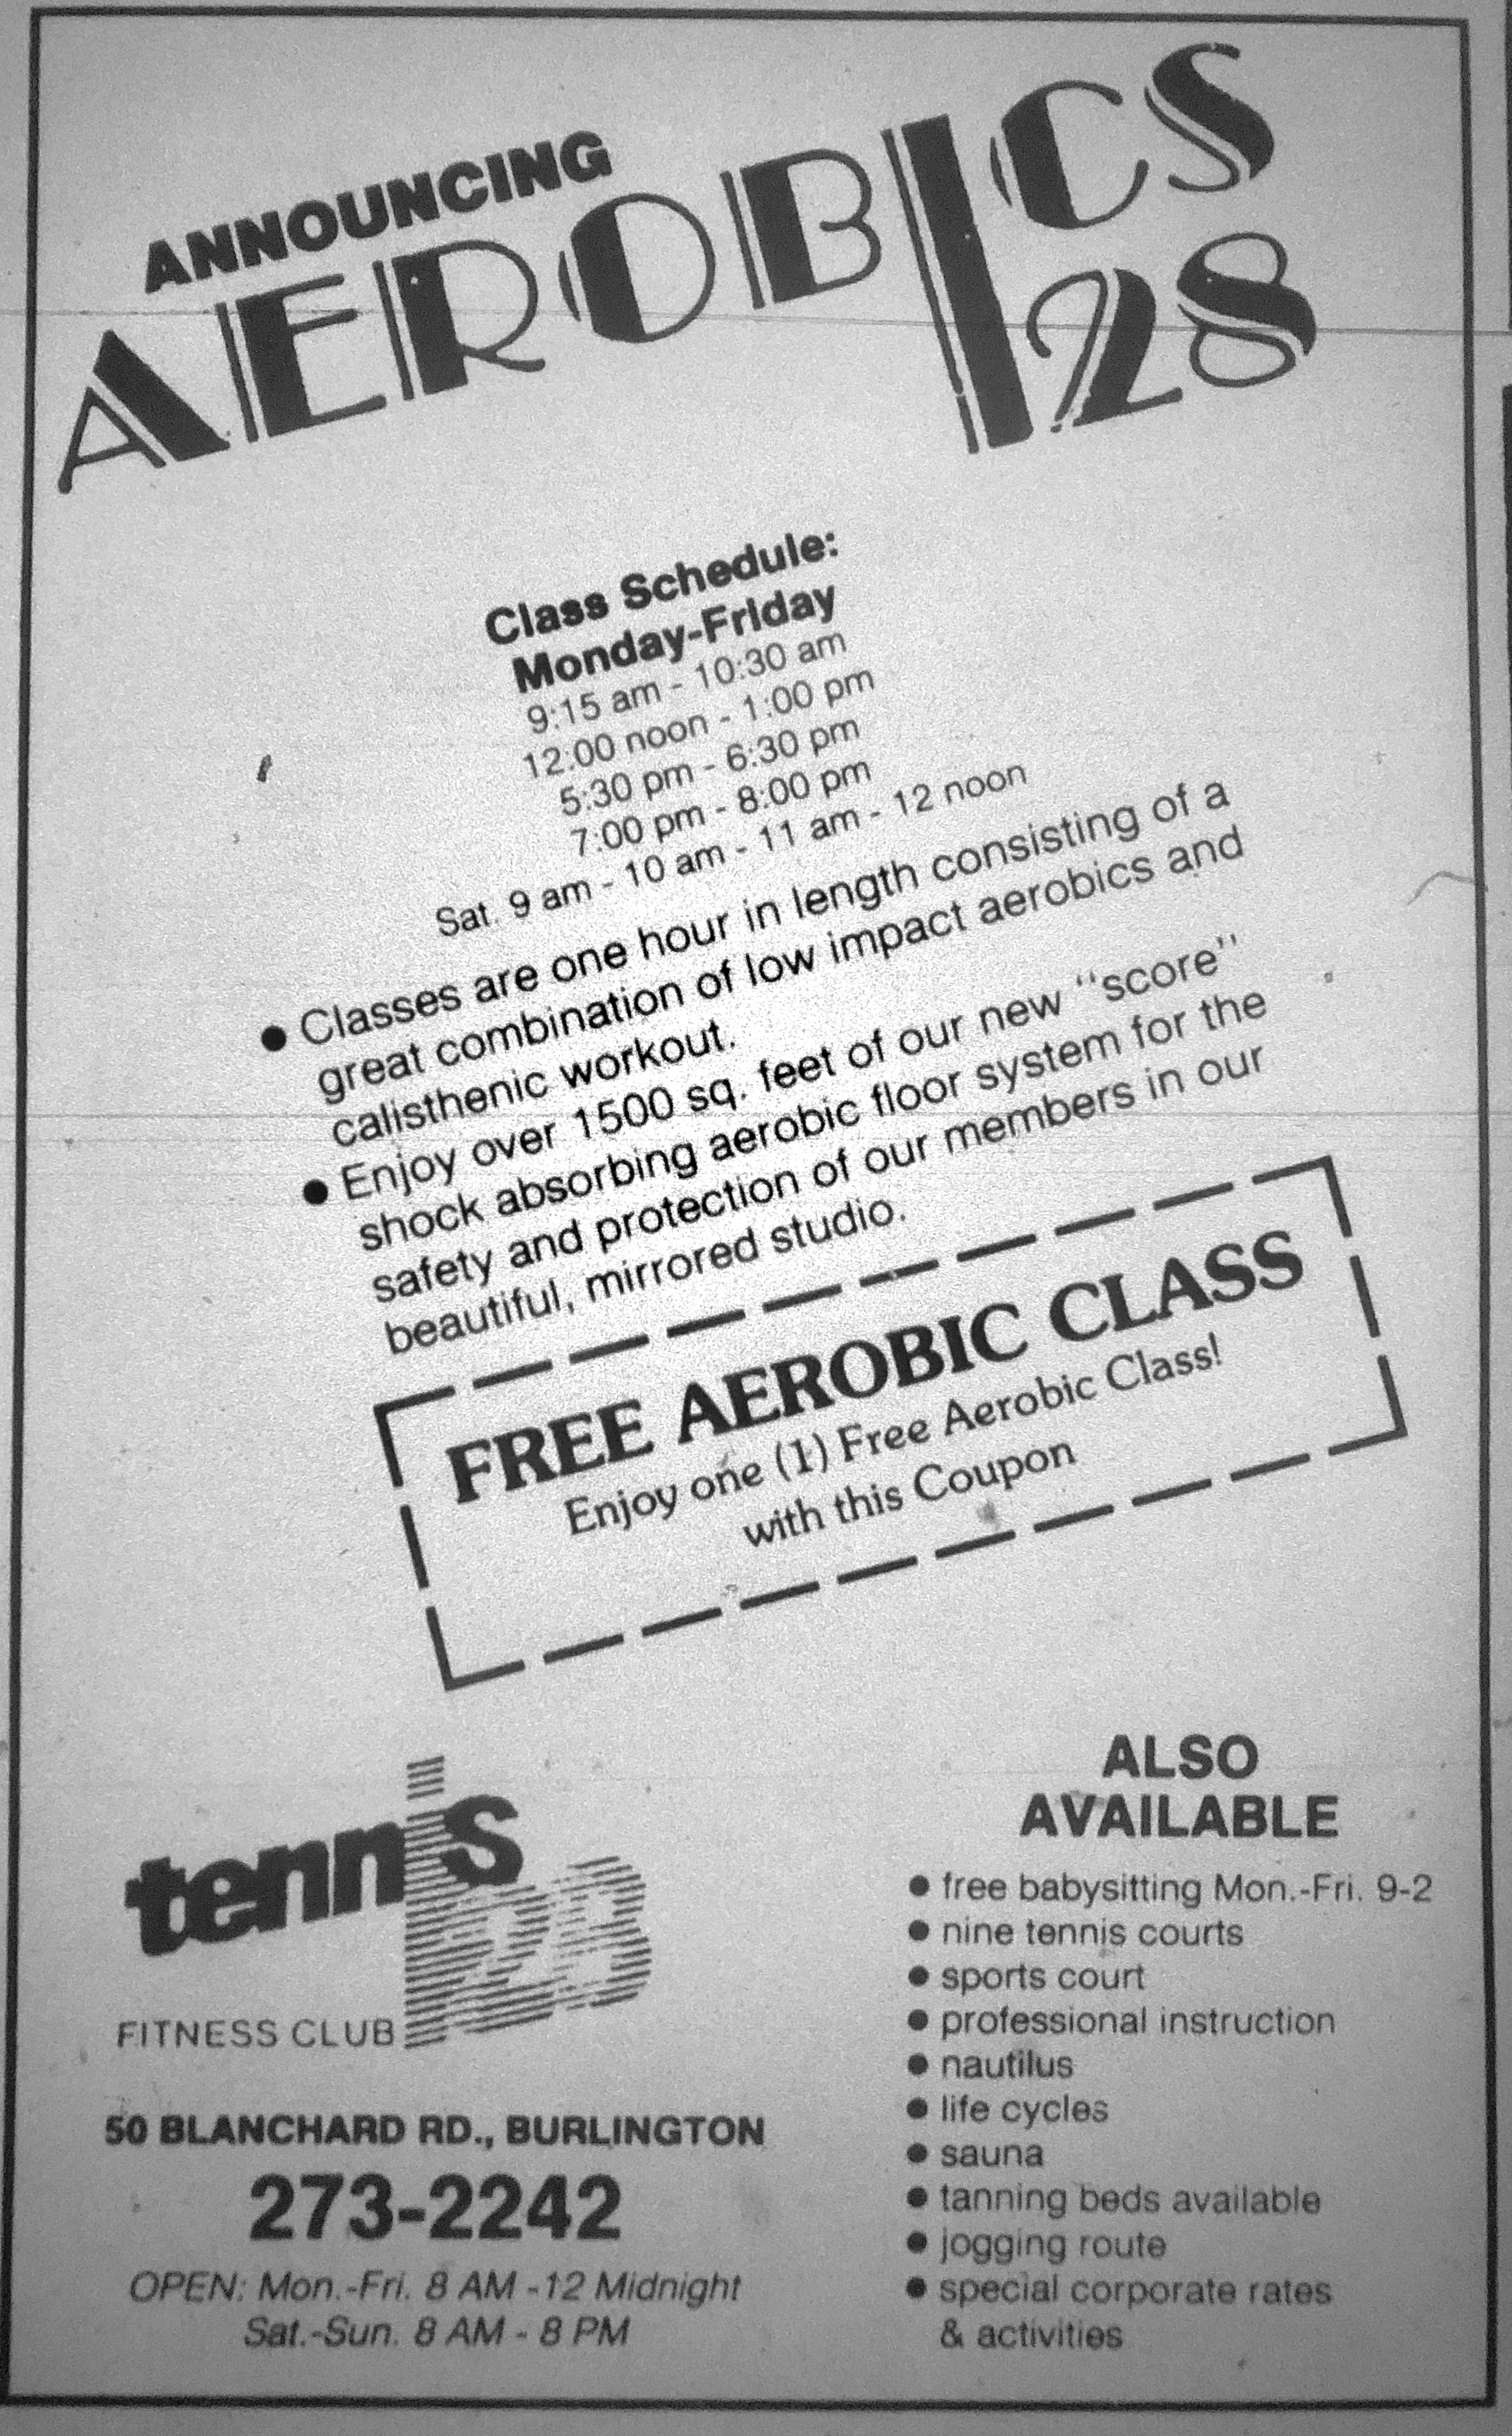 Tennis 128 aerobics, Burlington MA